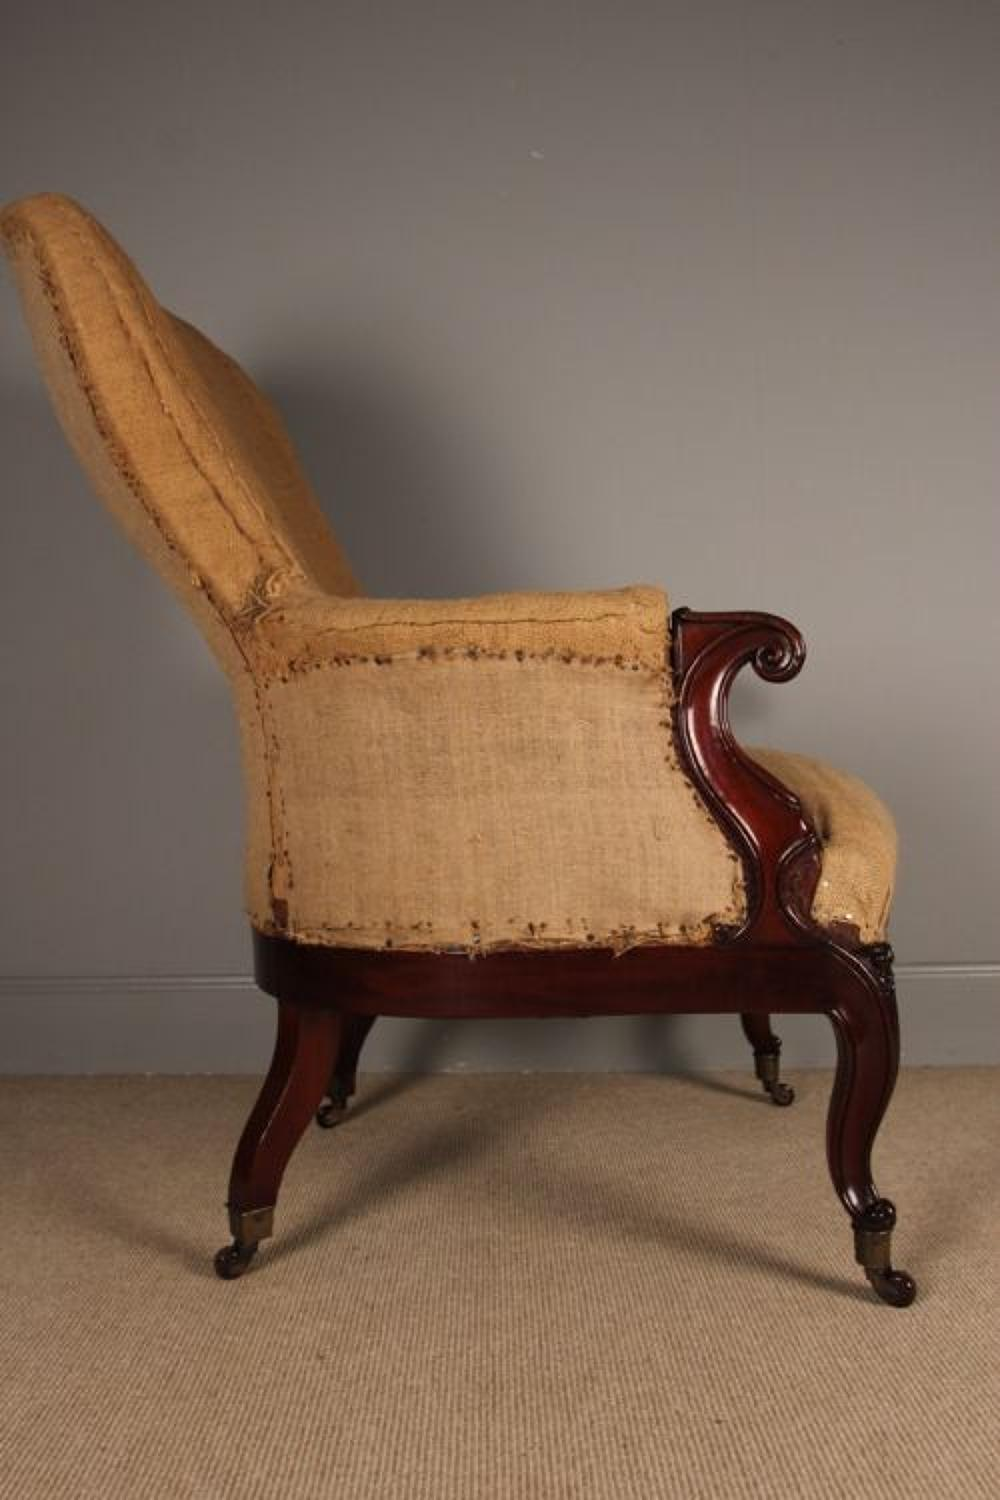 19th C. Shapely French Upholstered Chair